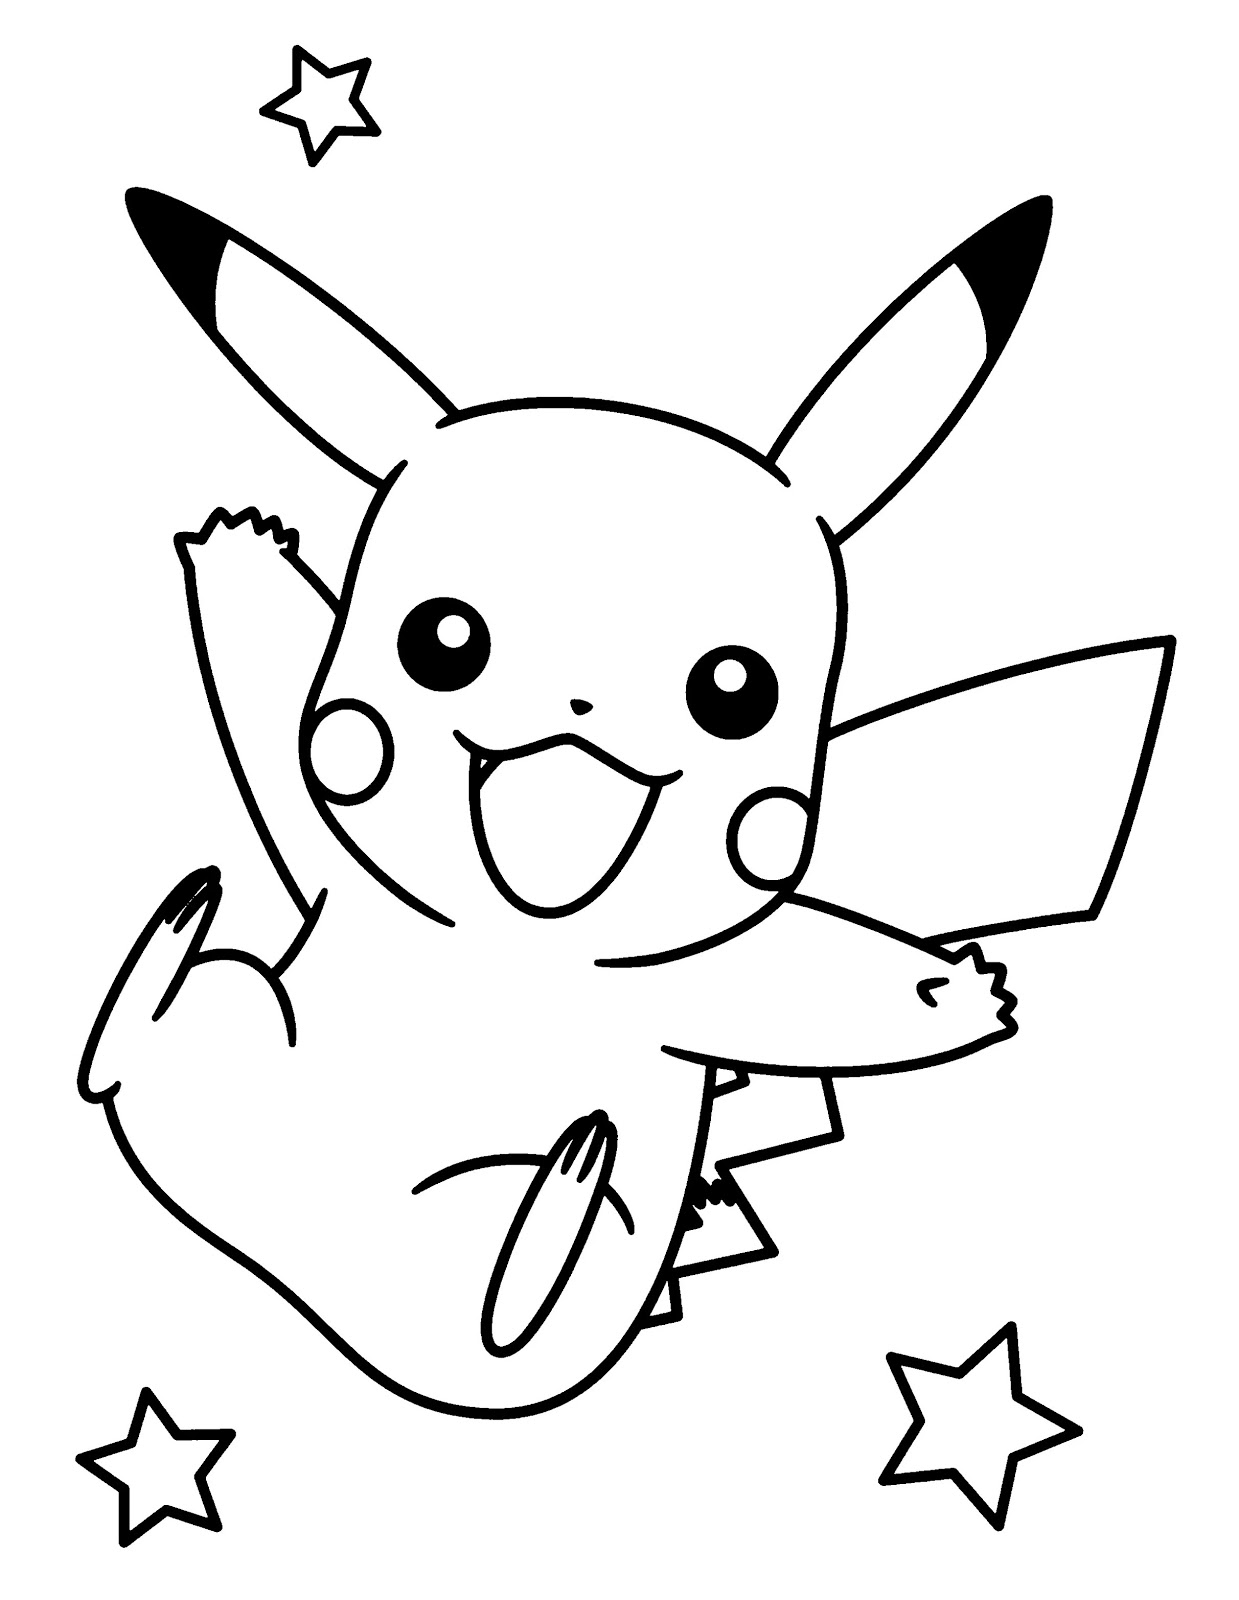 coloring pages pokemon pikachu kids activities for boys at home free printable